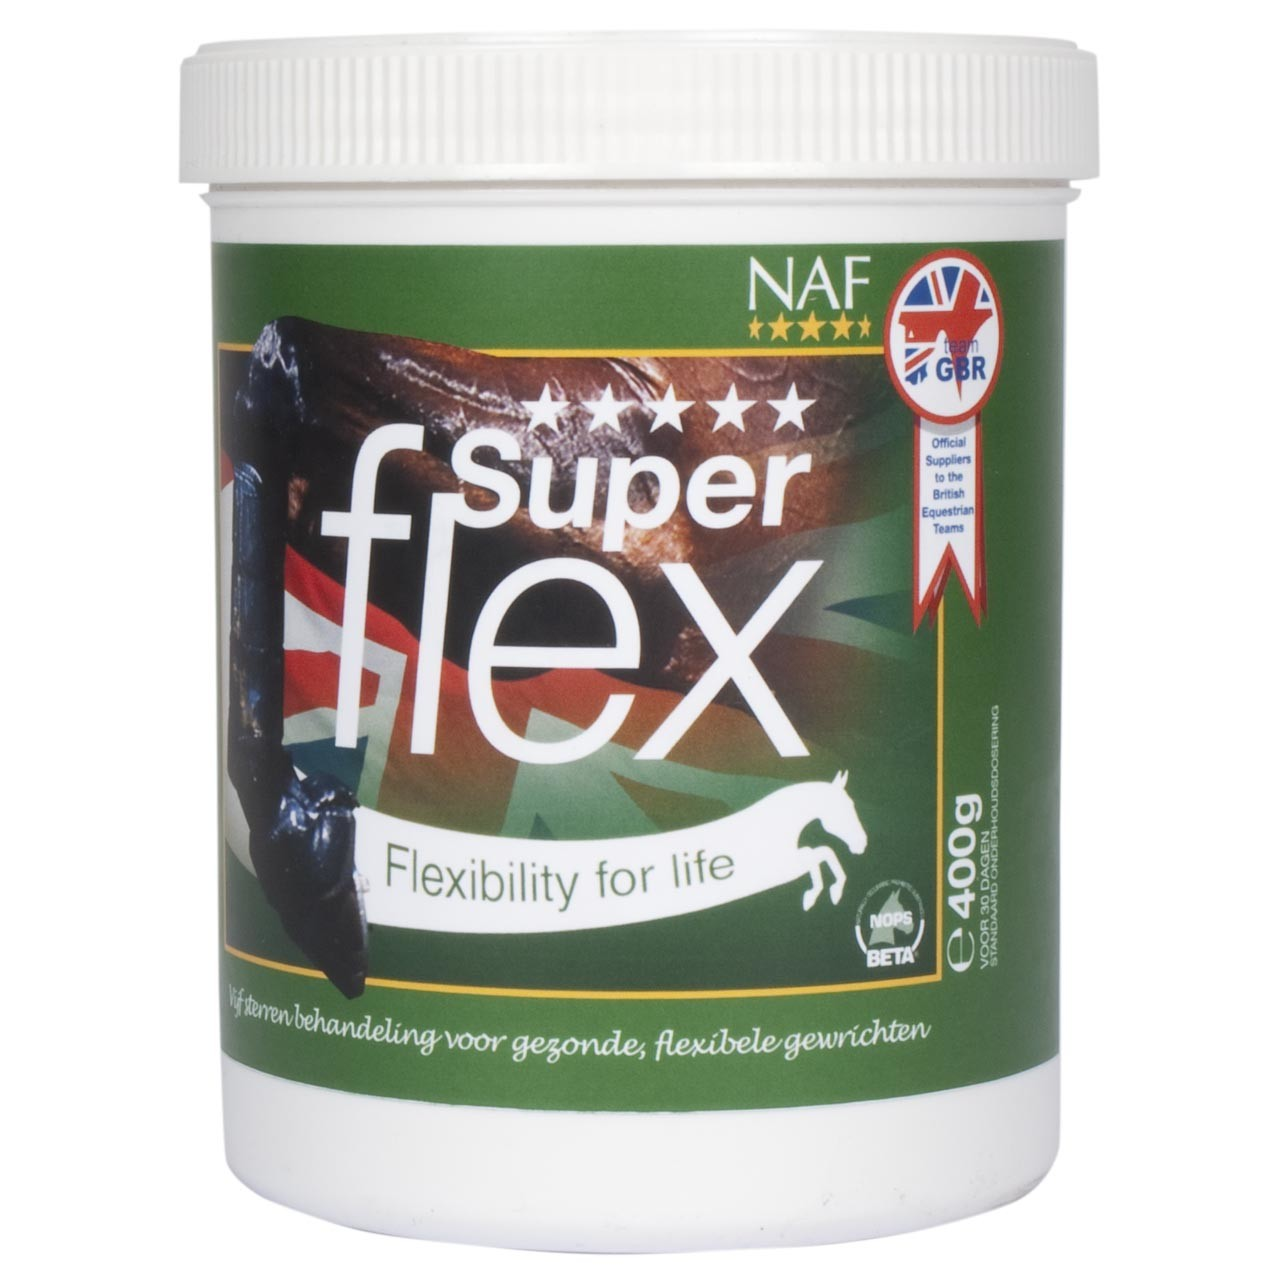 NAF Superflex 400gr